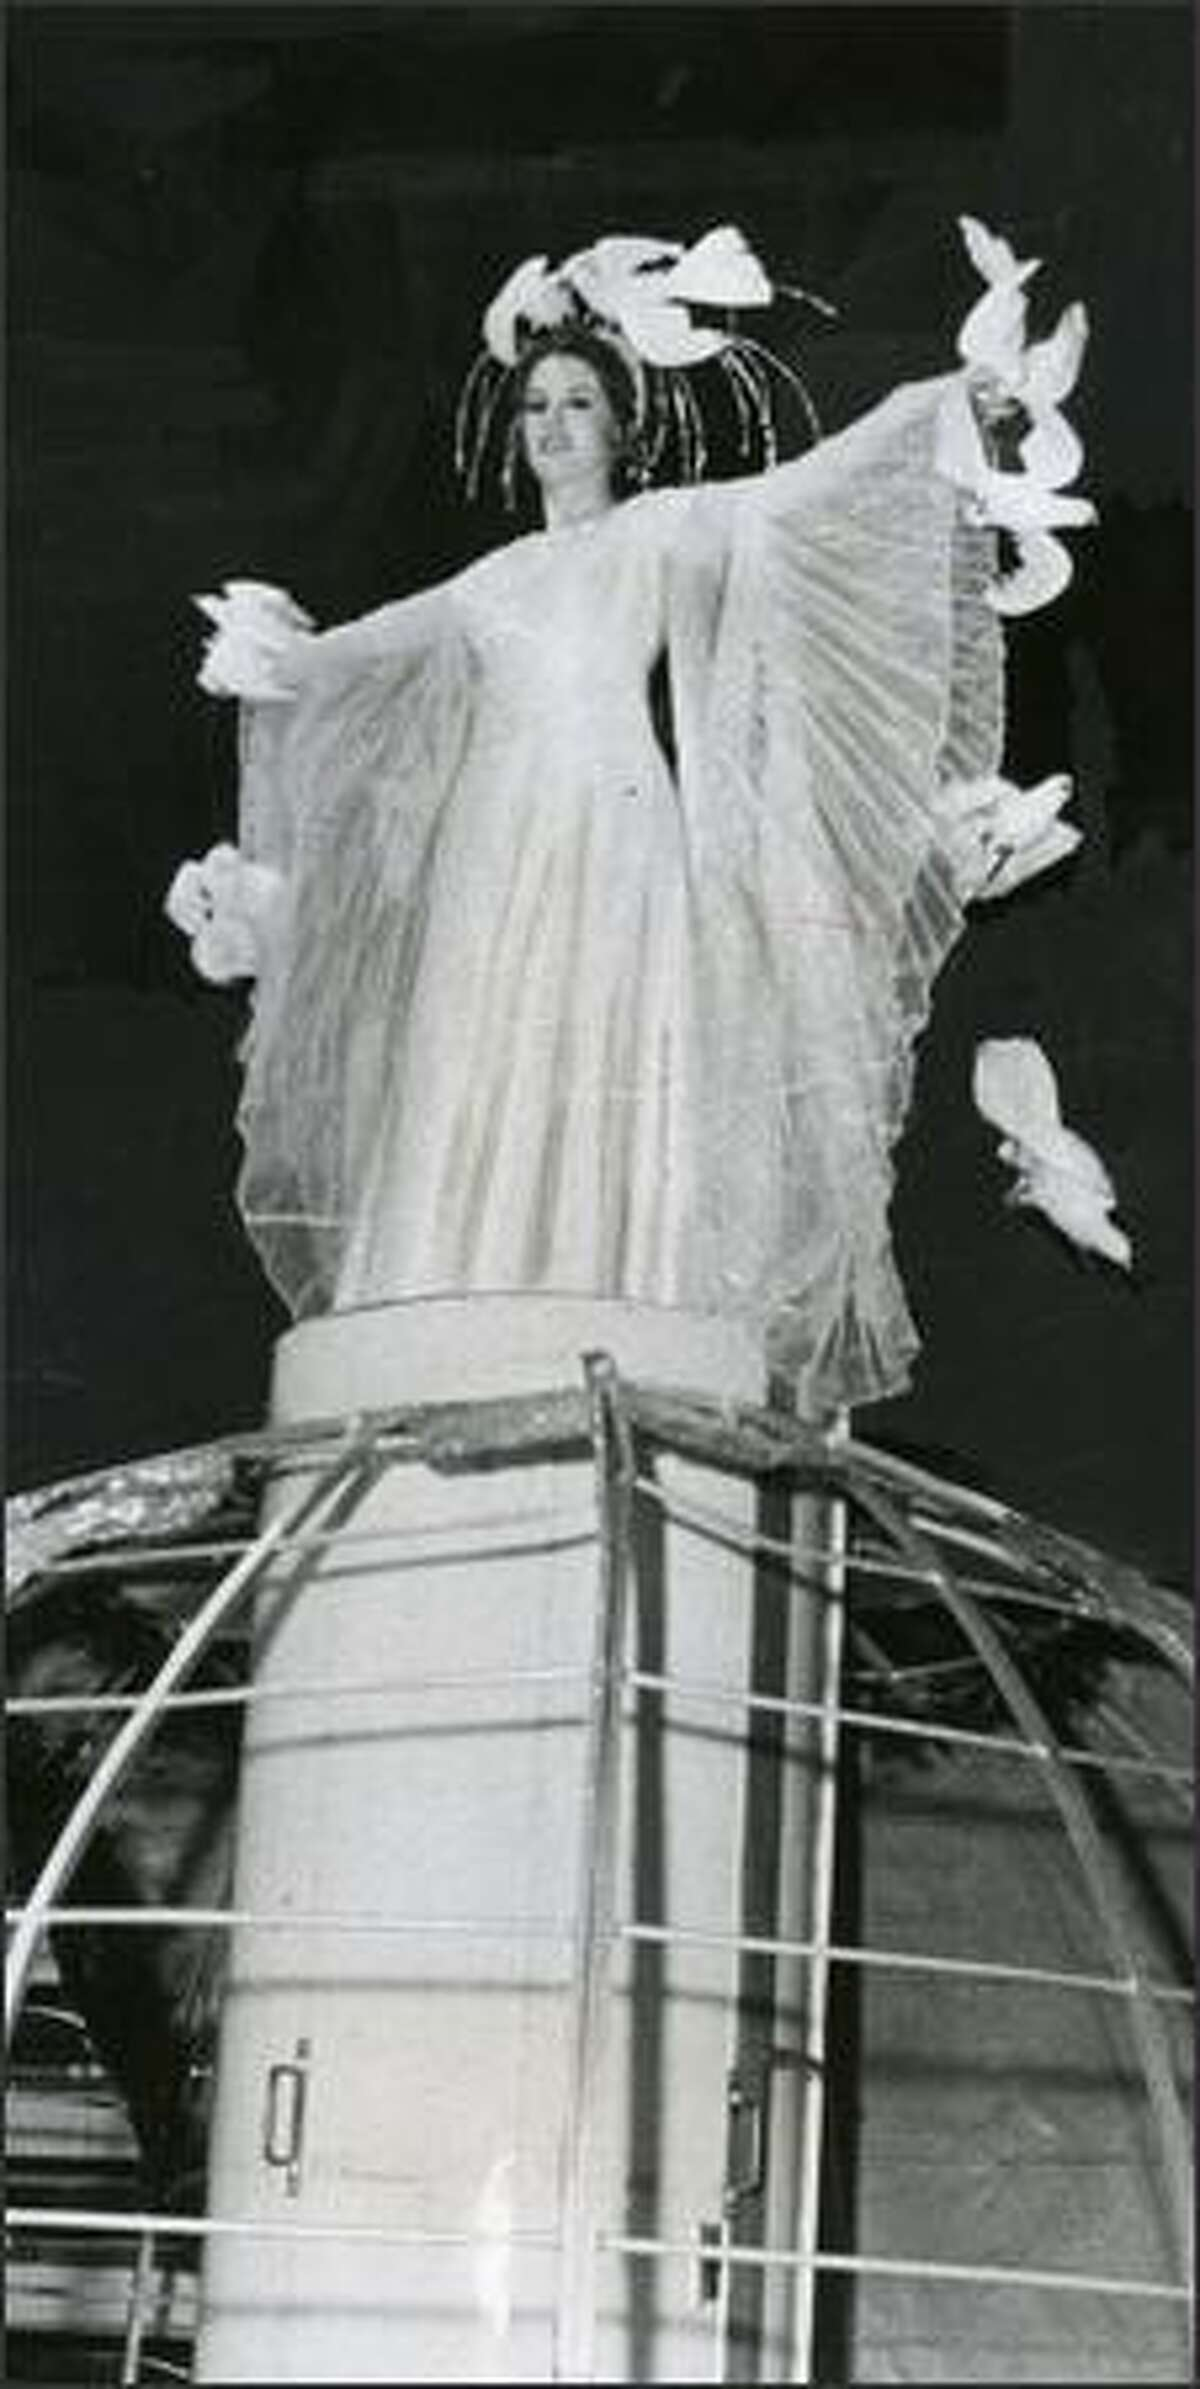 1970 - As part of an Ice Follies stunt, Susan Paynter was transformed into an